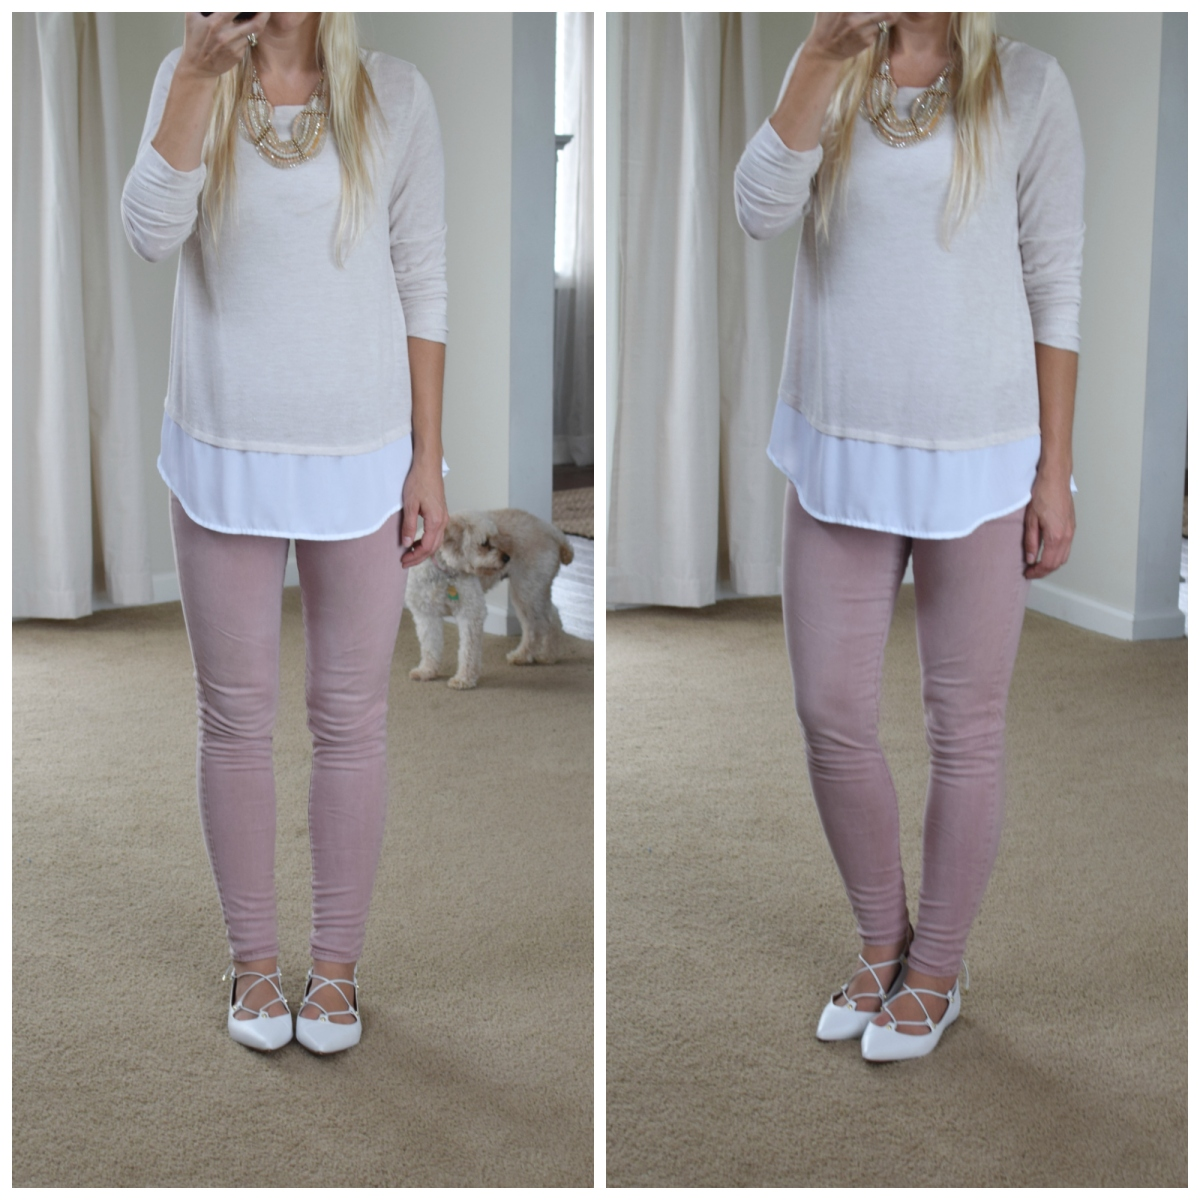 blush skinny jeans and a mixed media top with lace-up flats |www.pearlsandsportsbras.com|